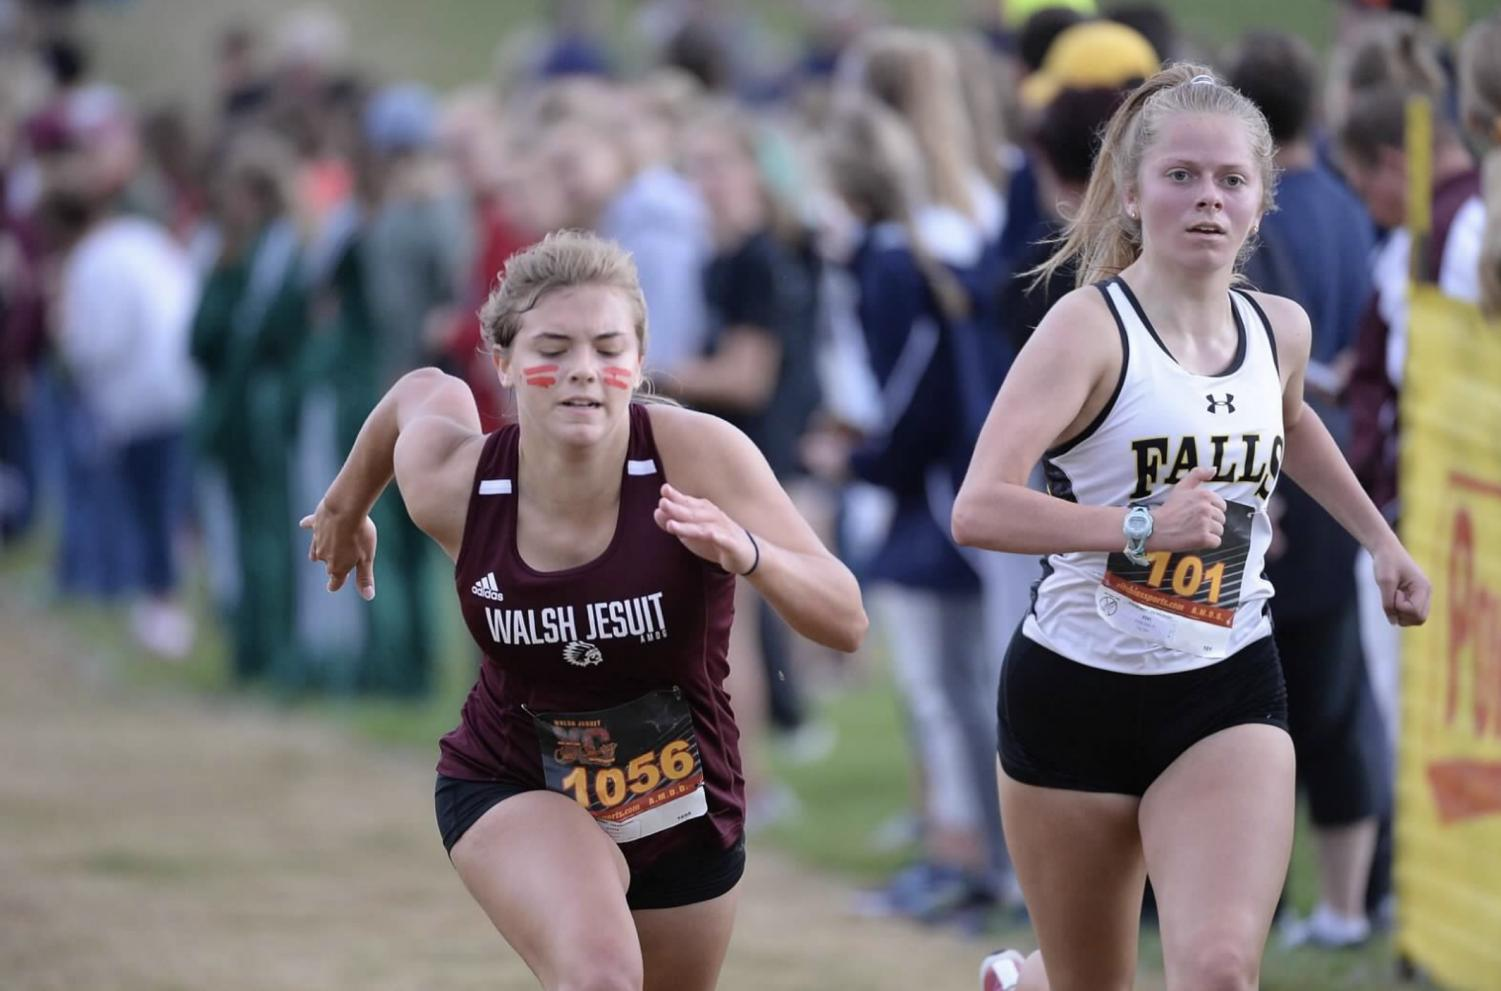 Junior Evie Sutkus sprints to the line during the Walsh Jesuit Pat Ritchie Invitational.